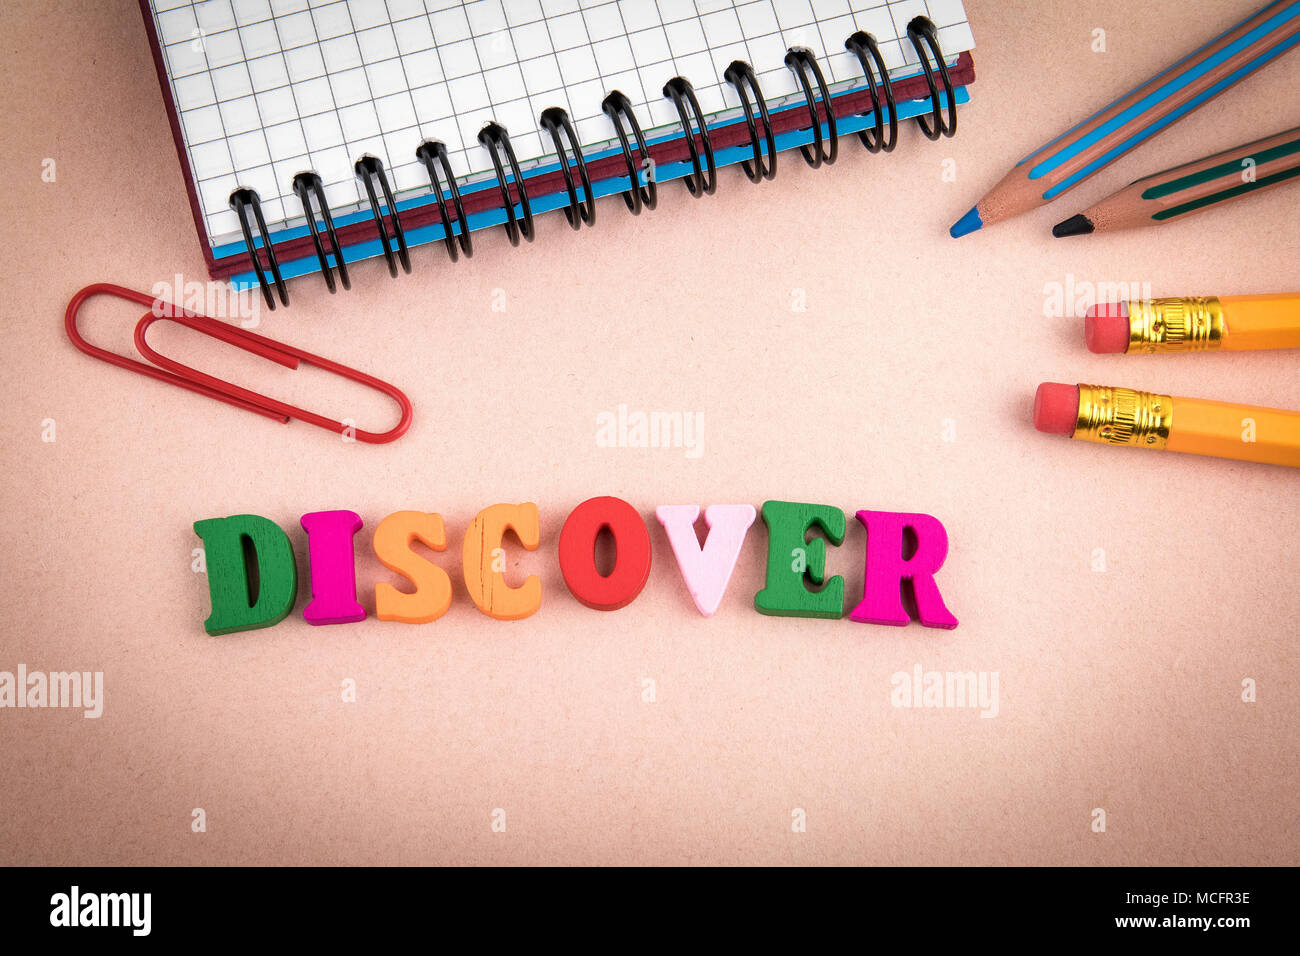 Discover. Wooden letters on the office desk - Stock Image